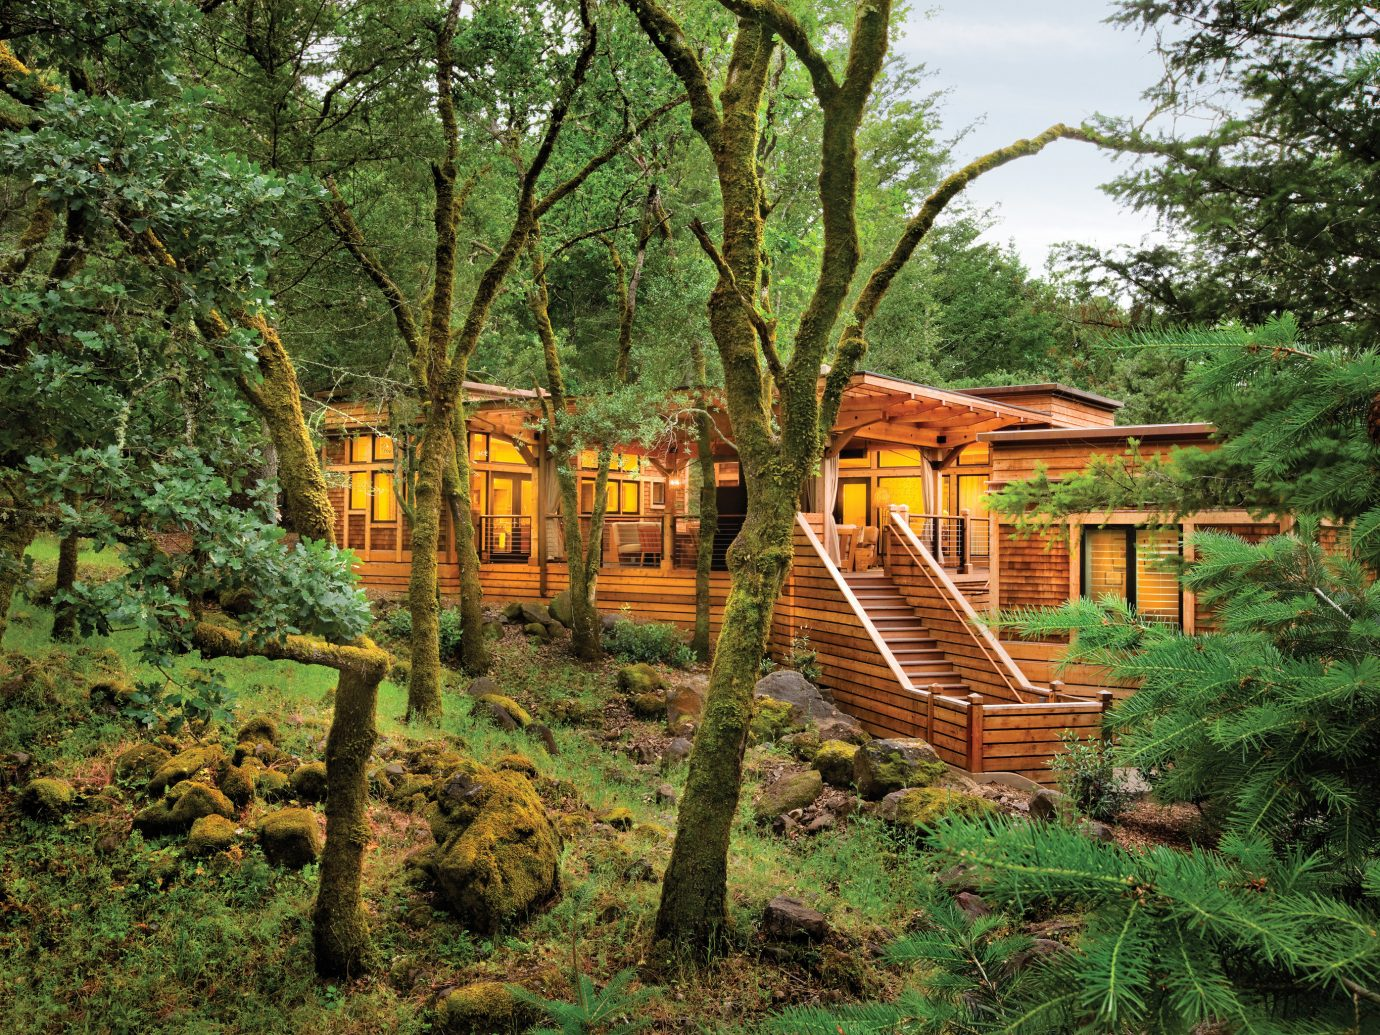 Eco Exterior Food + Drink Health + Wellness Hotels Luxury Outdoors Ranch Romance Romantic Rustic Spa Retreats Trip Ideas Wellness tree outdoor grass park Forest plant Jungle rural area log cabin woodland hut Garden outdoor structure rainforest lush area wood wooded surrounded shade